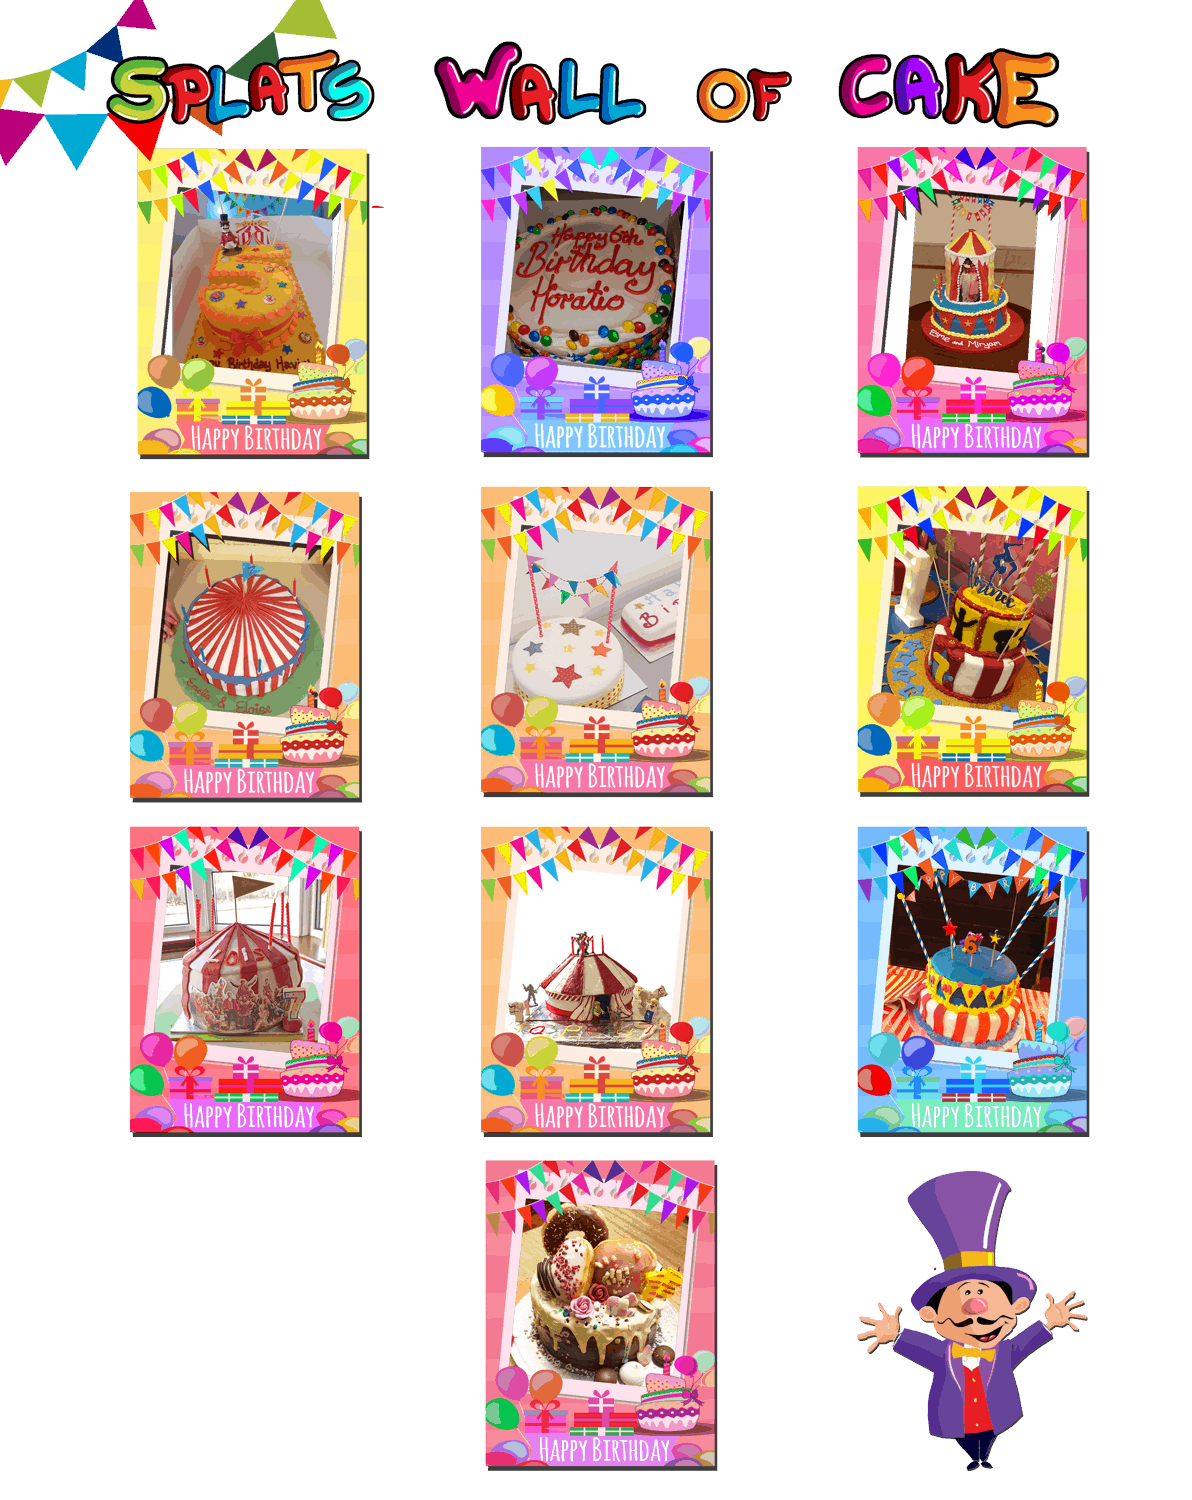 circus-birthday-cakes-splats-entertainment-newest-march